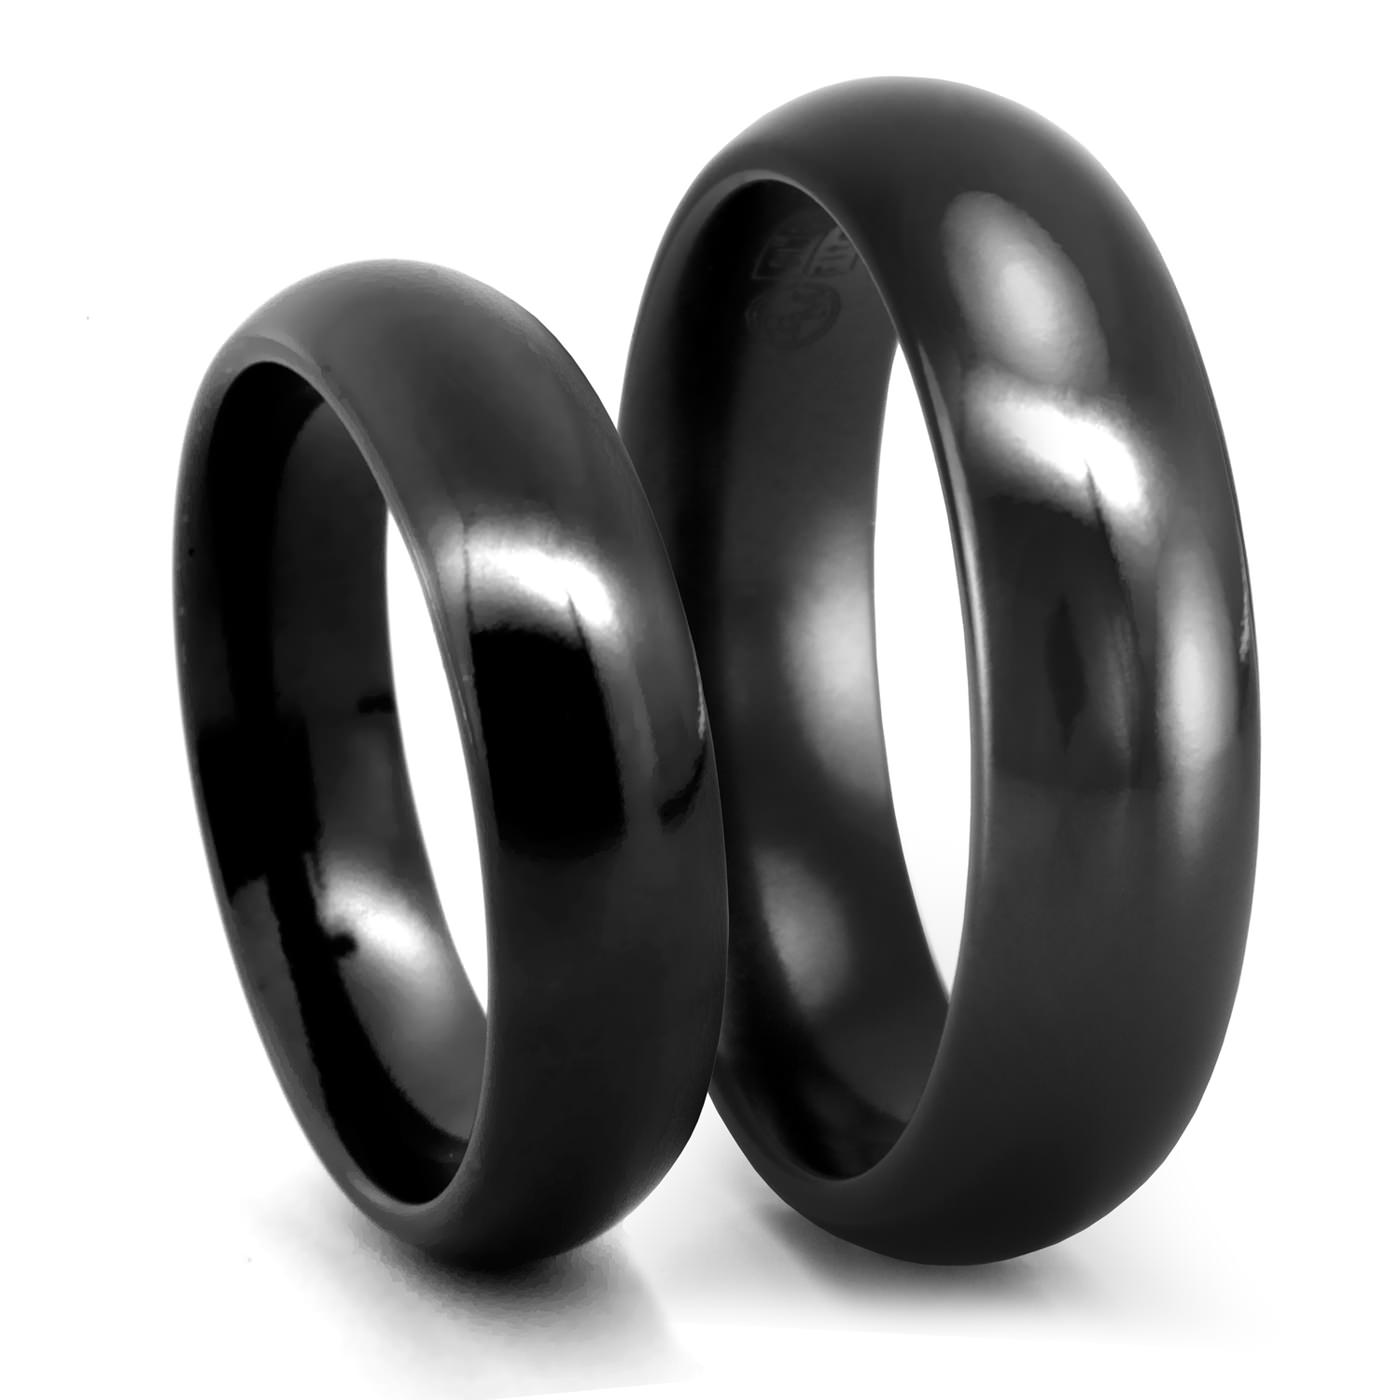 hers and his set rings ring matching couple brushed wedding image mens jewellery besttohave titanium